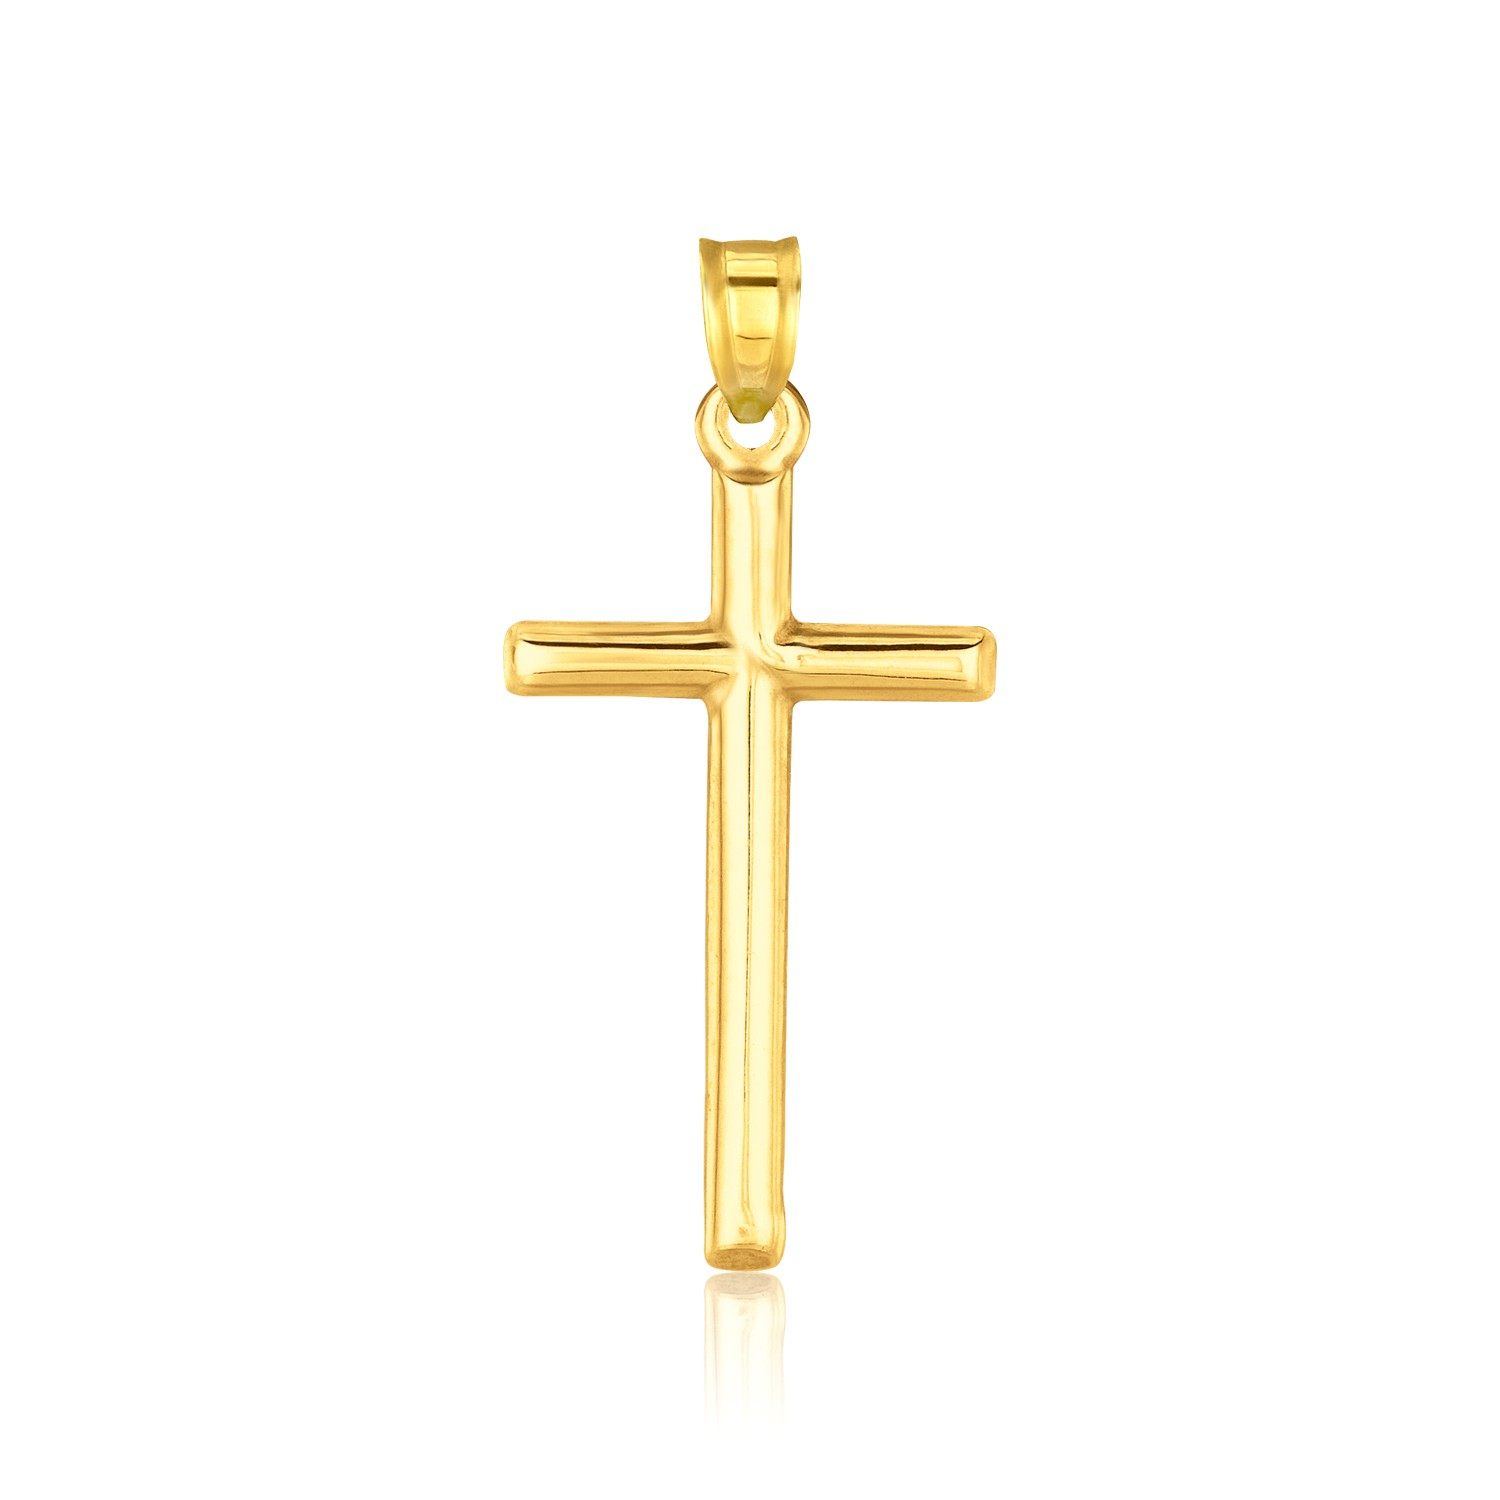 14k yellow gold high polished cross pendant for What is gold polished jewelry